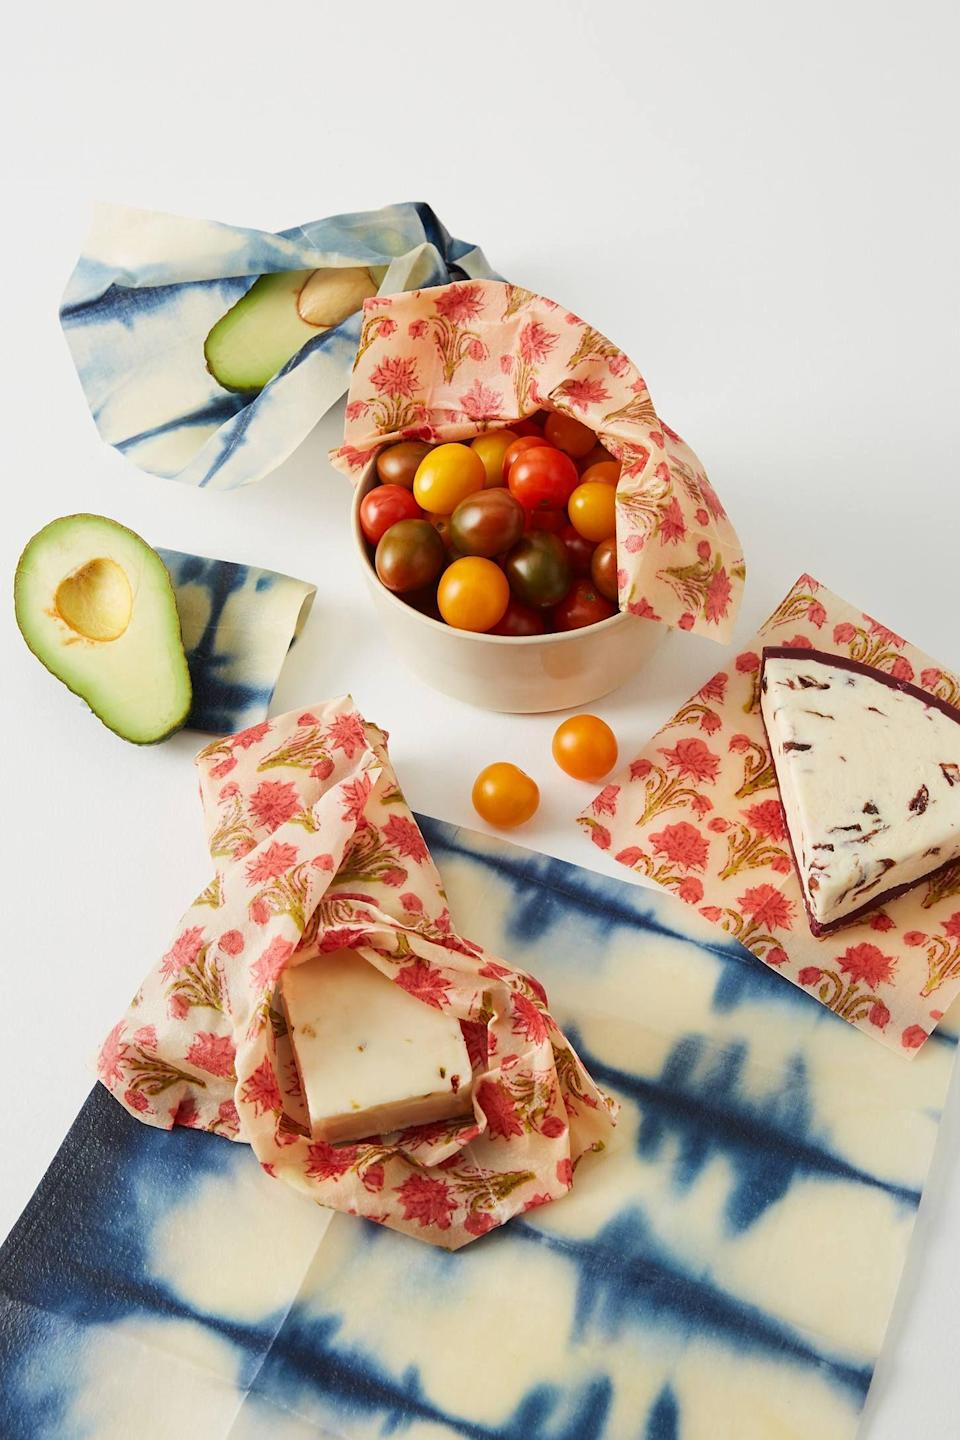 """<p><strong>Bee Kitchen Anthropologie</strong></p><p>anthropologie.com</p><p><strong>$24.00</strong></p><p><a href=""""https://go.redirectingat.com?id=74968X1596630&url=https%3A%2F%2Fwww.anthropologie.com%2Fshop%2Fbee-kitchen-beeswax-wraps-set-of-3&sref=https%3A%2F%2Fwww.countryliving.com%2Fshopping%2Fgifts%2Fnews%2Fg4859%2Fbest-friend-gifts%2F"""" rel=""""nofollow noopener"""" target=""""_blank"""" data-ylk=""""slk:Shop Now"""" class=""""link rapid-noclick-resp"""">Shop Now</a></p><p>If your friend loves to entertain, these eco-friendly reusable wraps are perfect for veggies and leftovers and will keep food fresher for longer. </p>"""